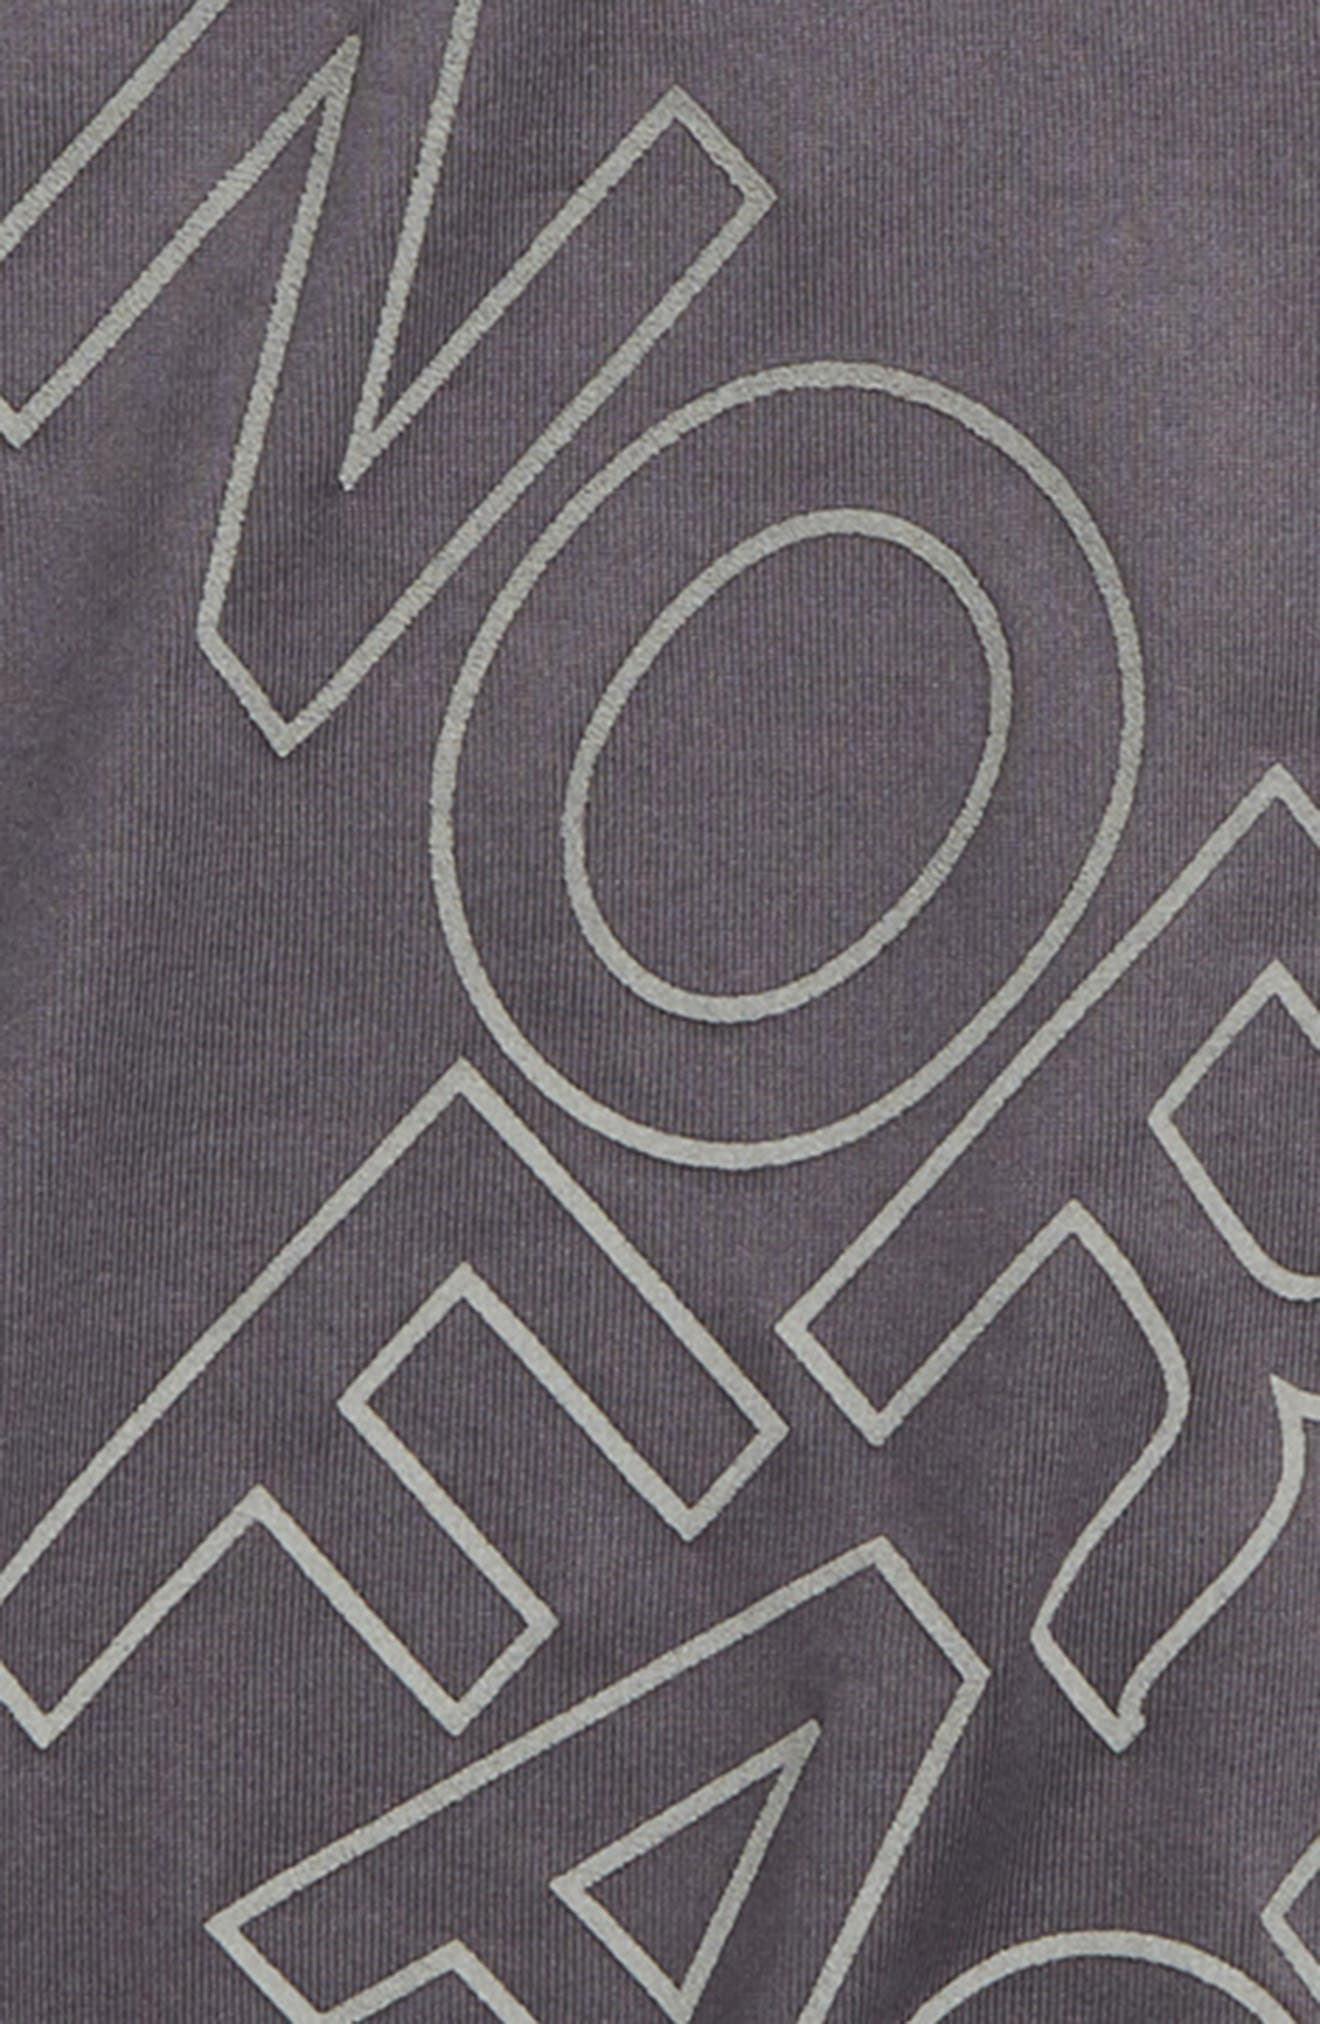 Reaxion Tee,                             Alternate thumbnail 2, color,                             021